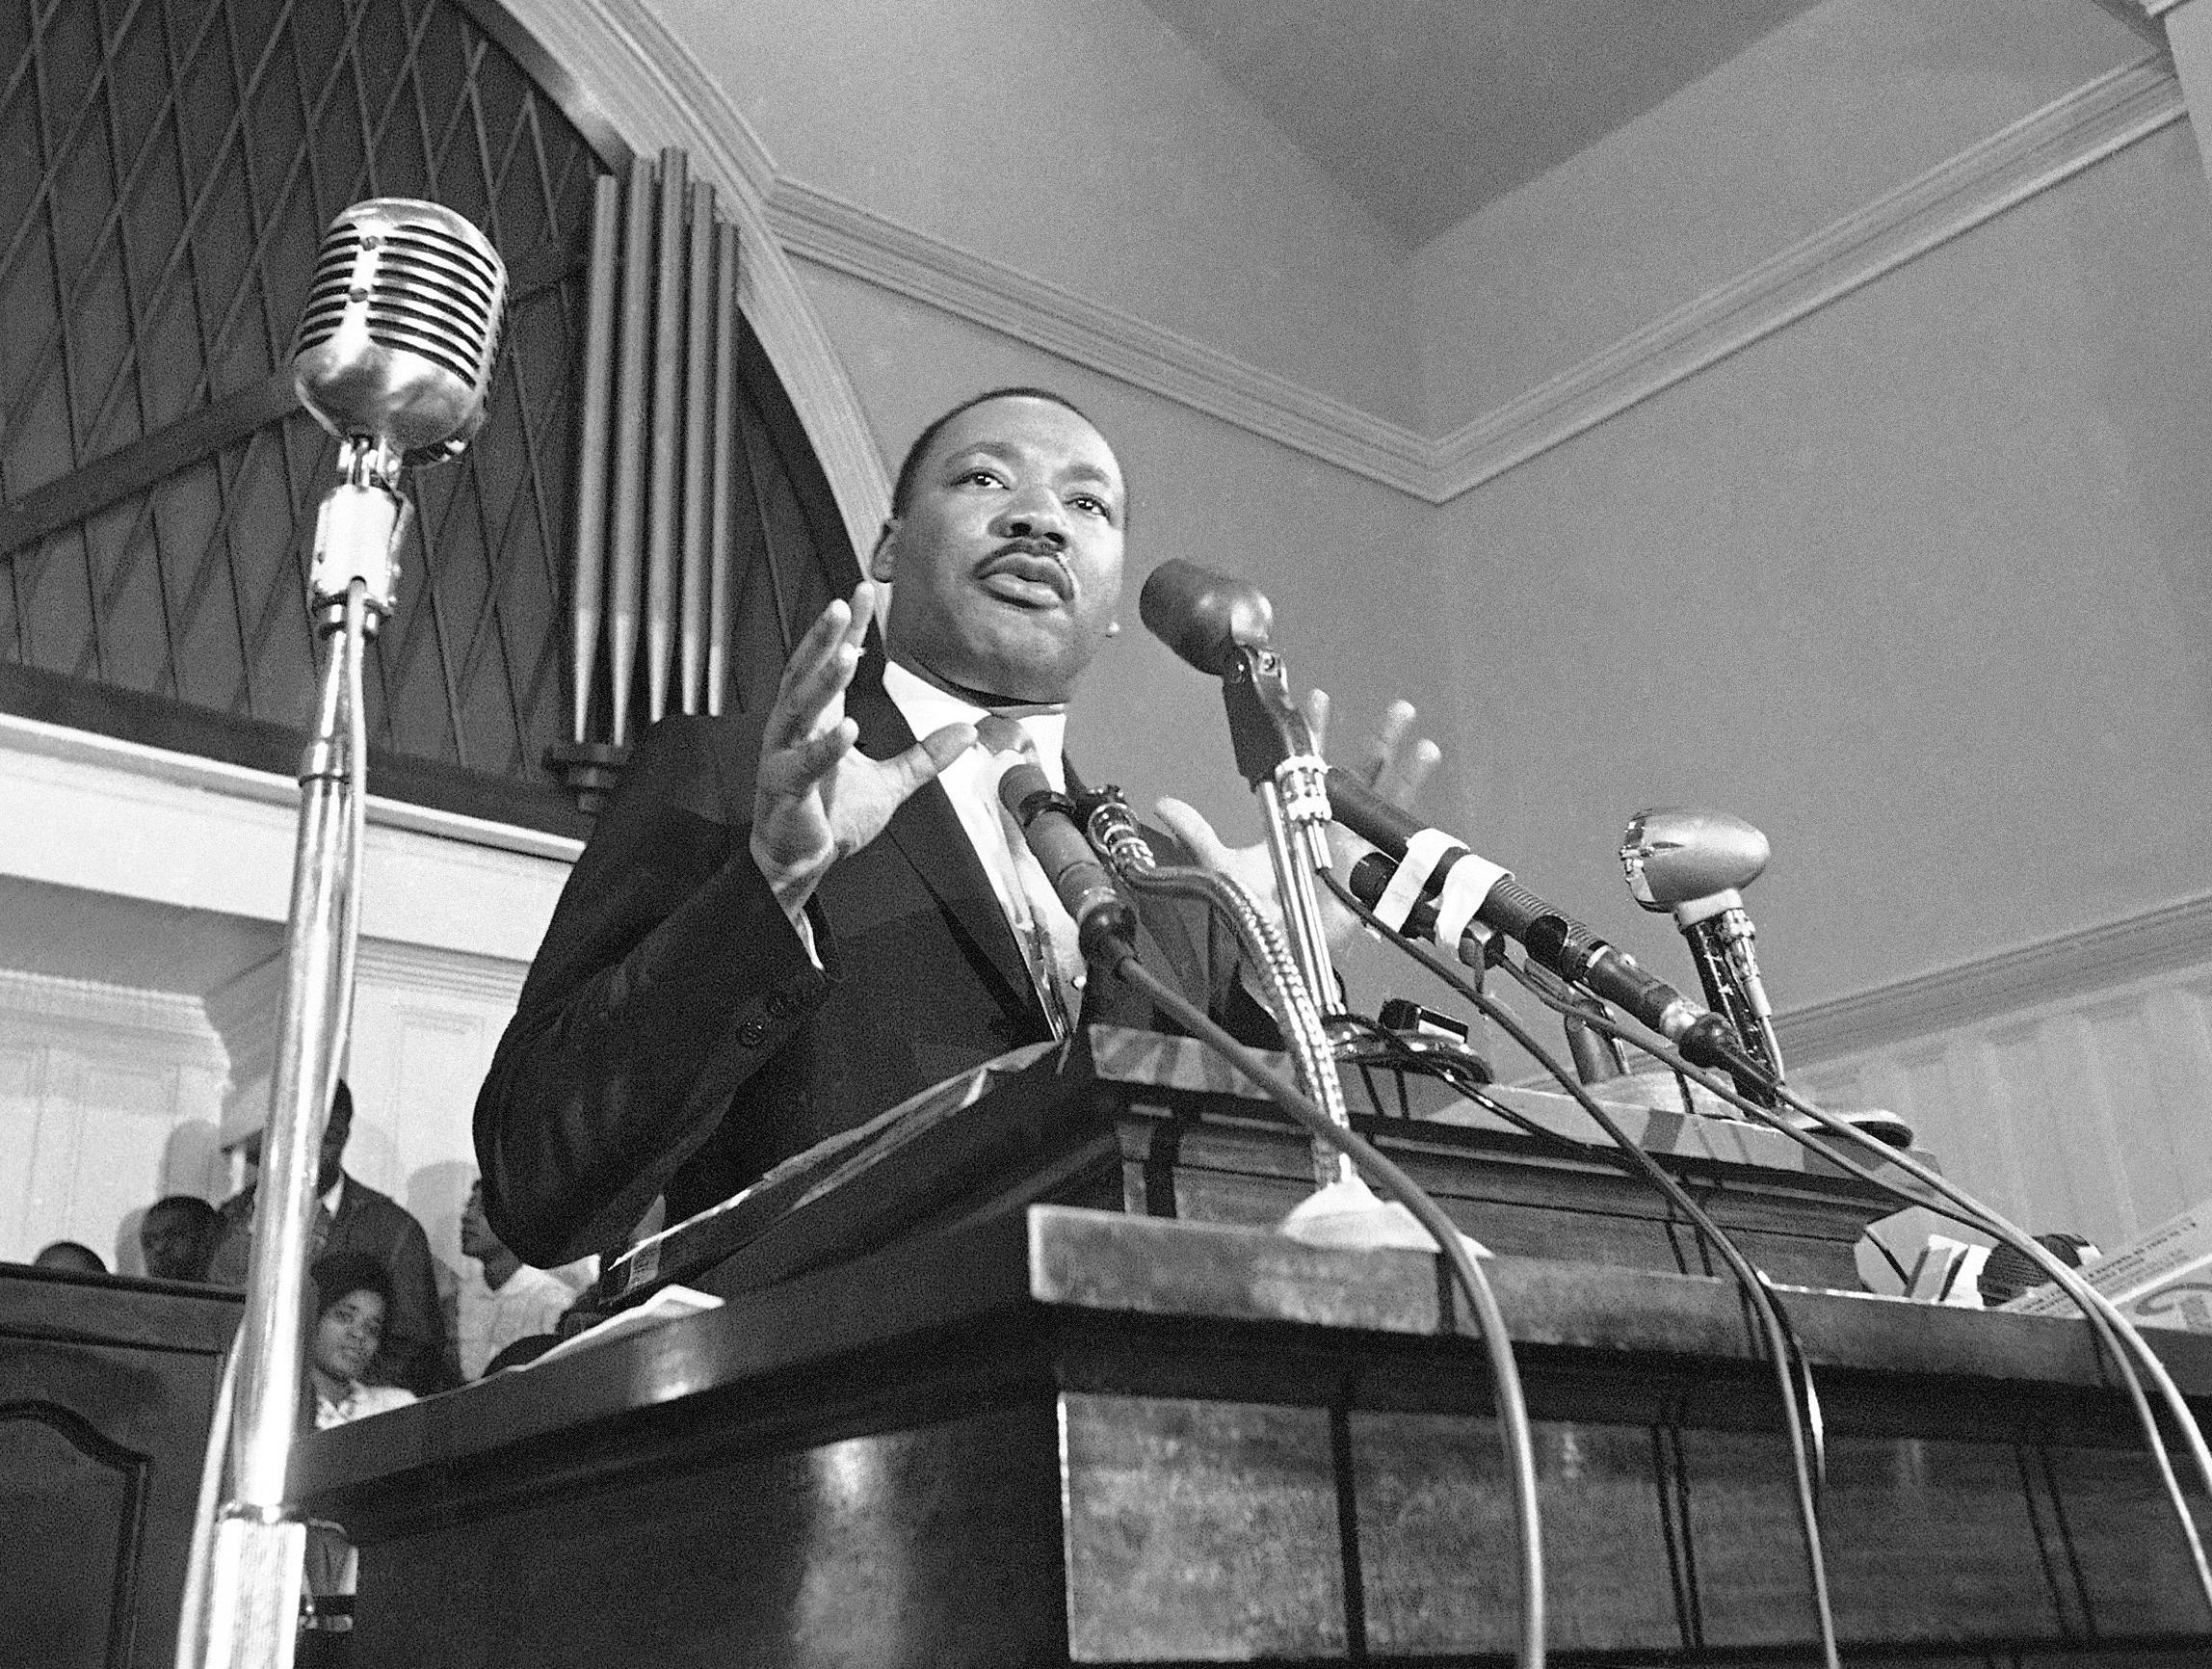 """FILE - In this 1960, file photo, Martin Luther King Jr. speaks in Atlanta. President Donald Trump has visions of establishing by the final months of his second term—should he win one—a """"National Garden of American Heroes"""" that will pay tribute to some of the prominent figures in the nation's history, including Rev. Martin Luther King Jr., that he sees as the """"greatest Americans to ever live."""" The president unveiled his plan Friday, July 3, 2020, during his speech at Mount Rushmore National Memorial, S.D. (AP Photo, File)"""